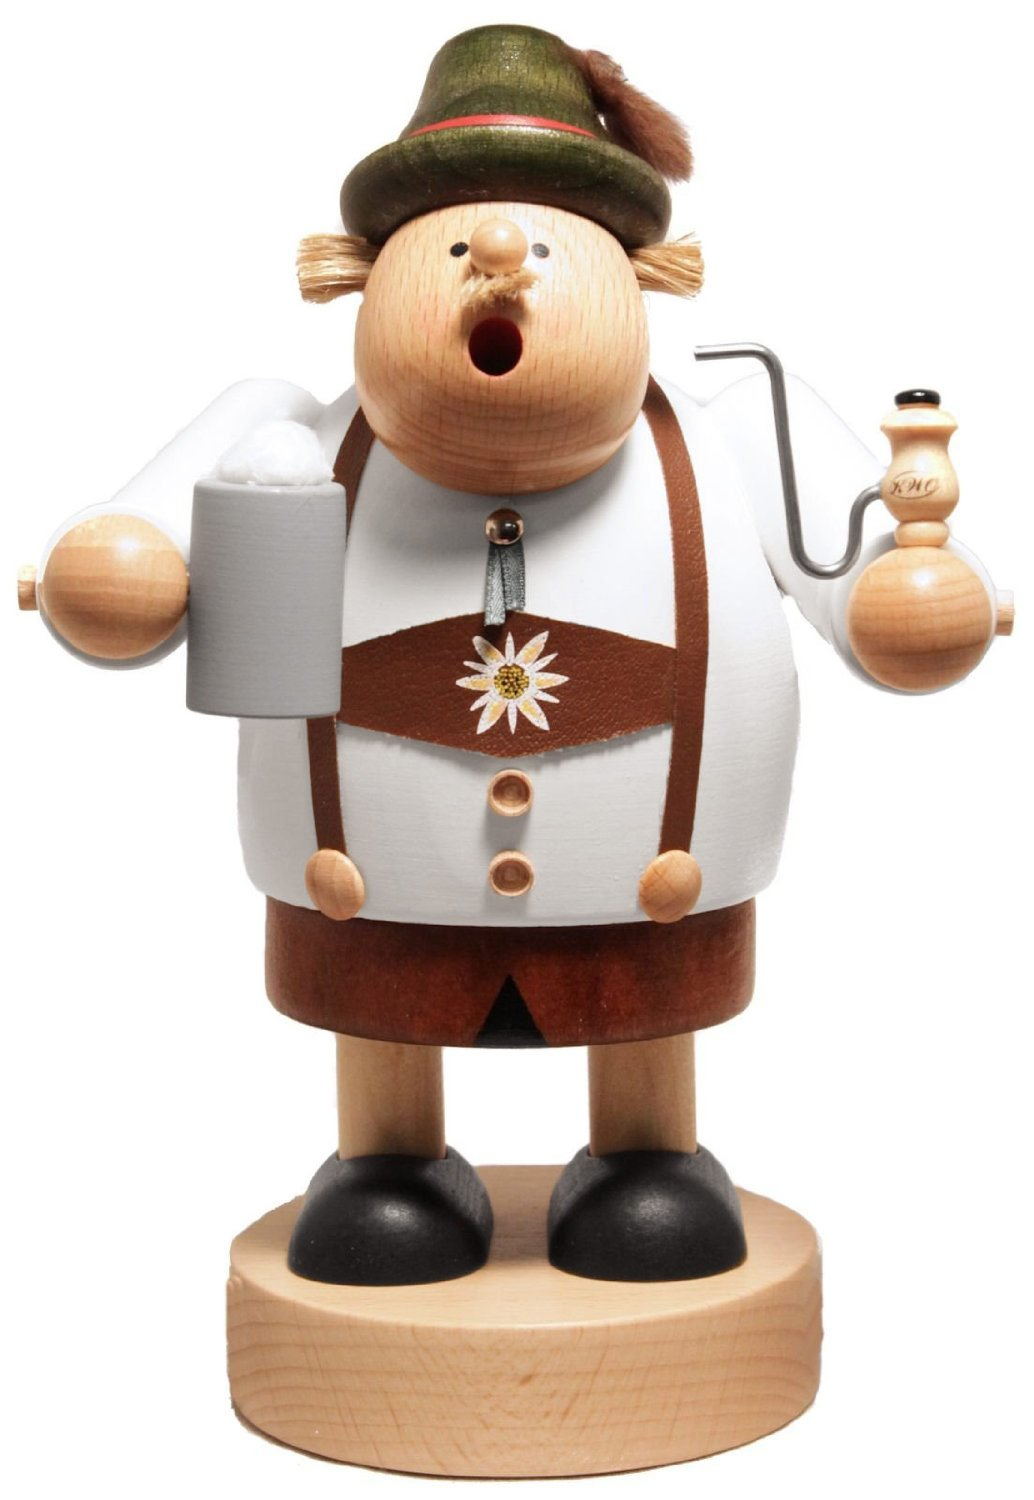 KWO Oktoberfest Bavarian Drinking Beer German Smoker - Approx 7.25 in Tall - ... by KWO (Image #1)